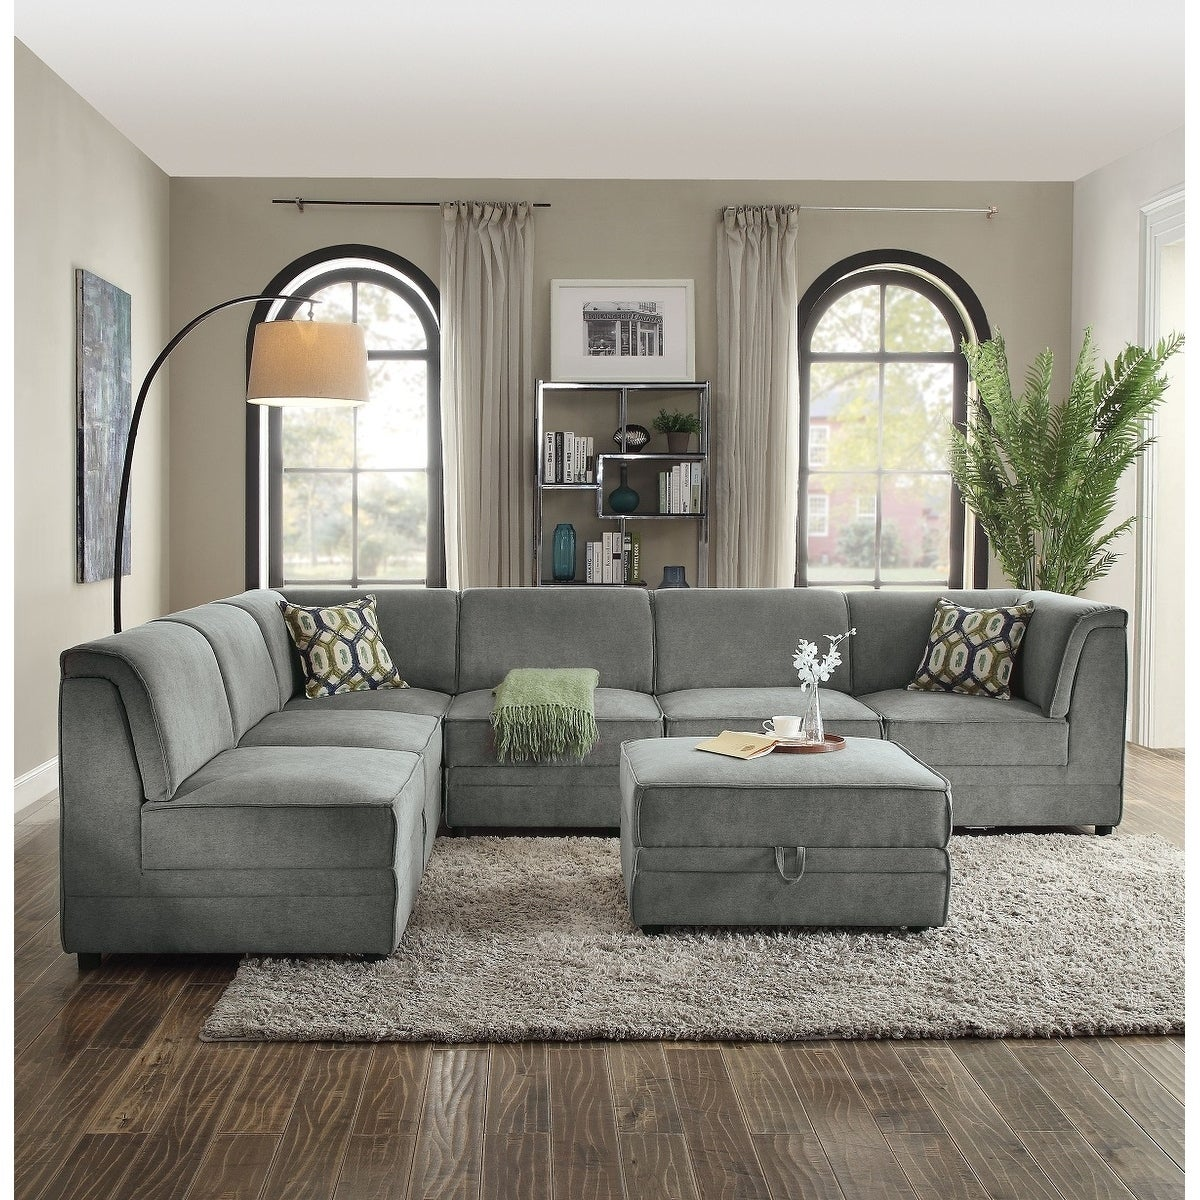 Shop linkuva 7 piece modular sectional sofa upholstered in grey velvet free shipping today overstock com 25980313